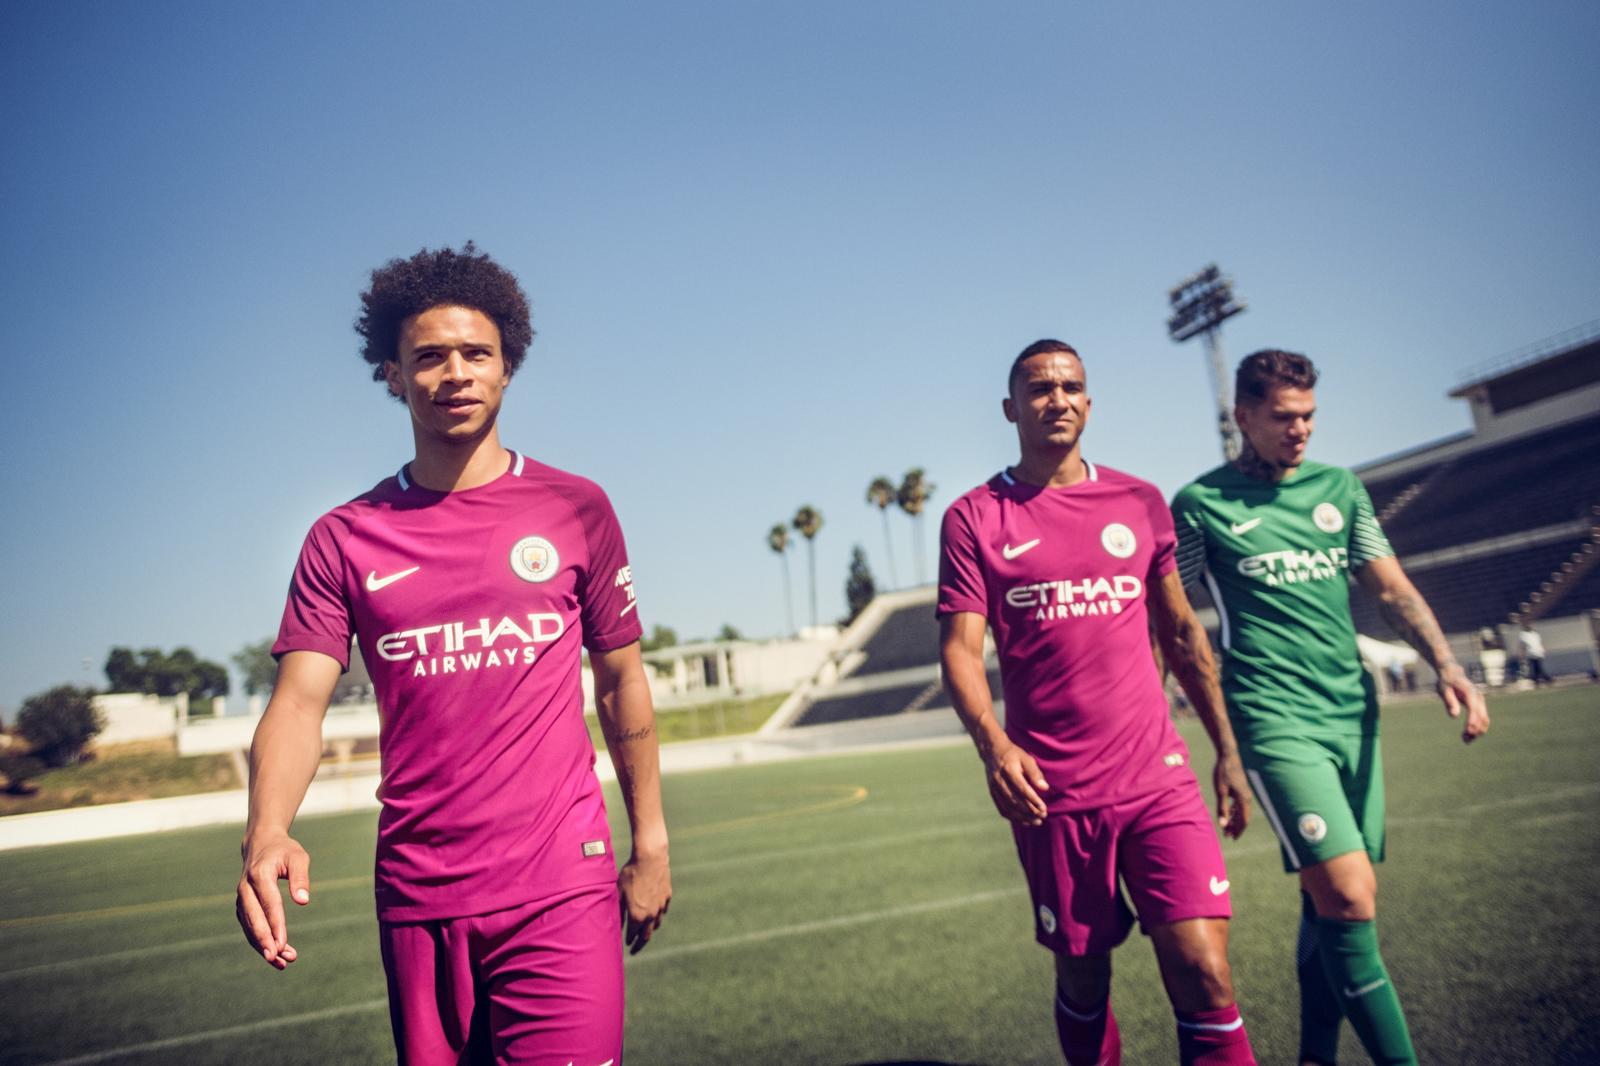 Manchester City Reveal 2017-18 Away Kit in Los Angeles - Nike News 47d1c2d9e